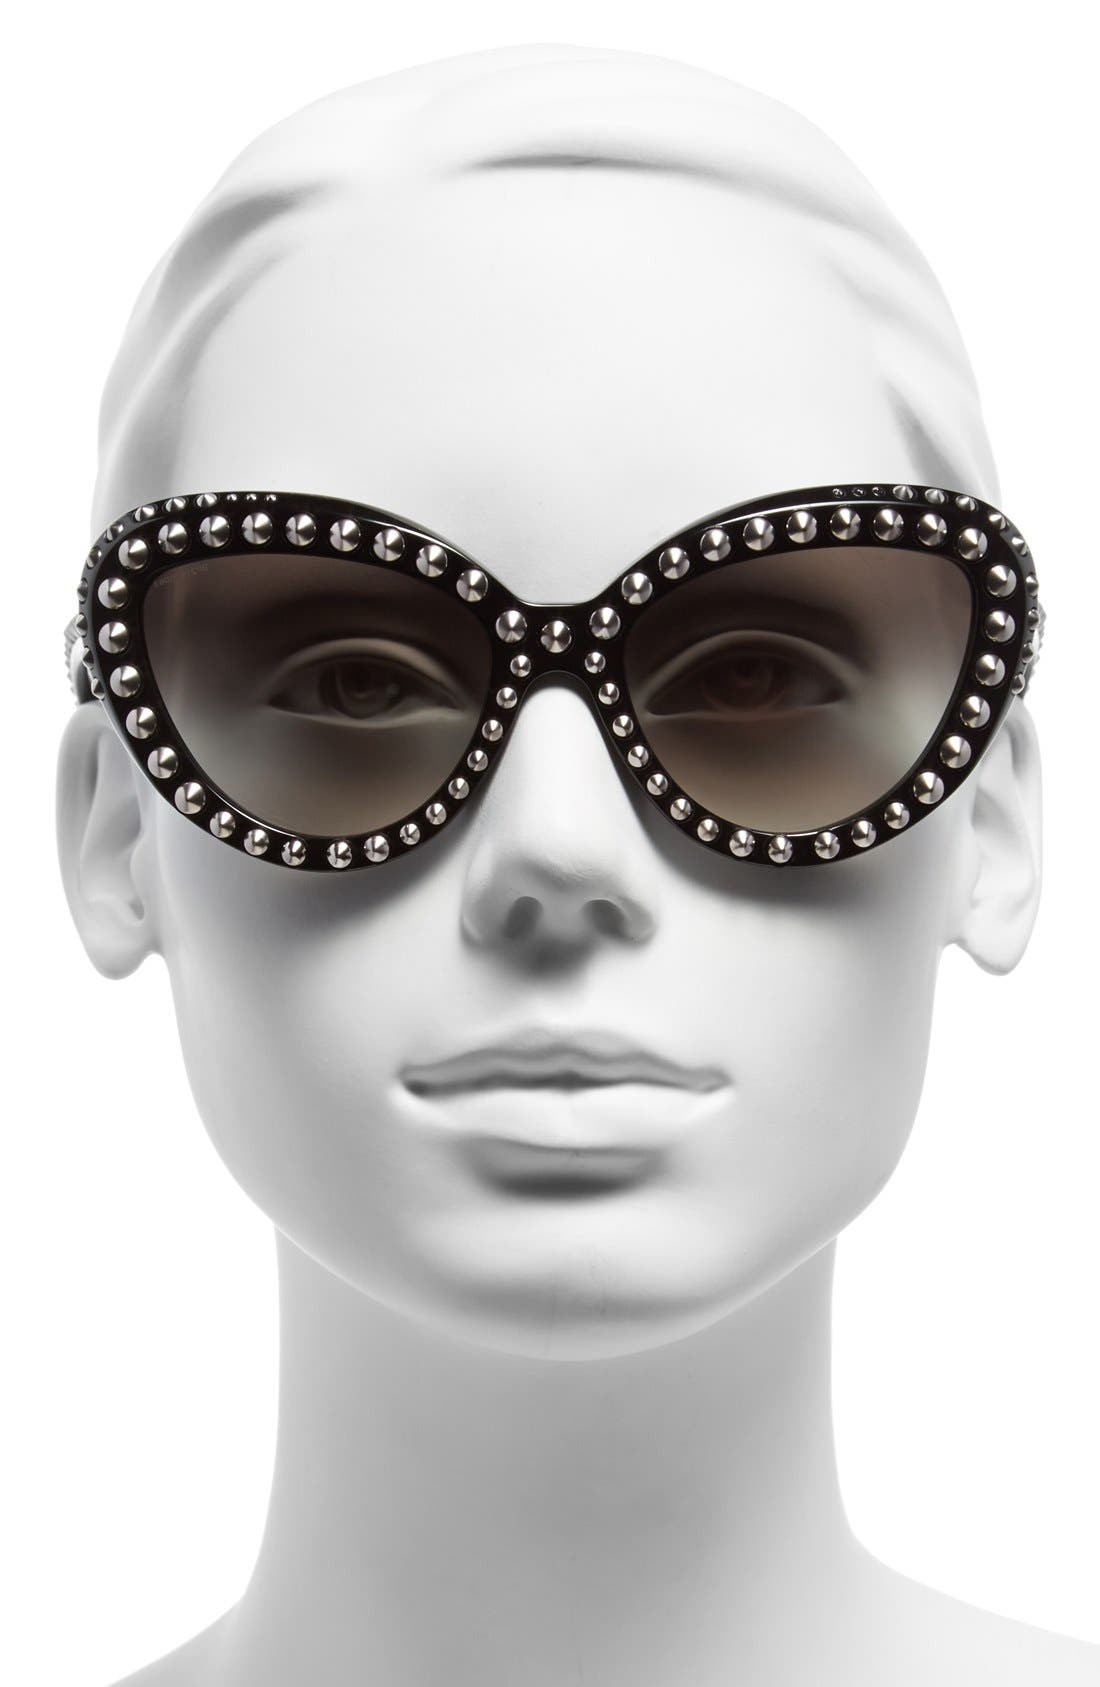 57mm Studded Cat Eye Sunglasses,                             Alternate thumbnail 2, color,                             001